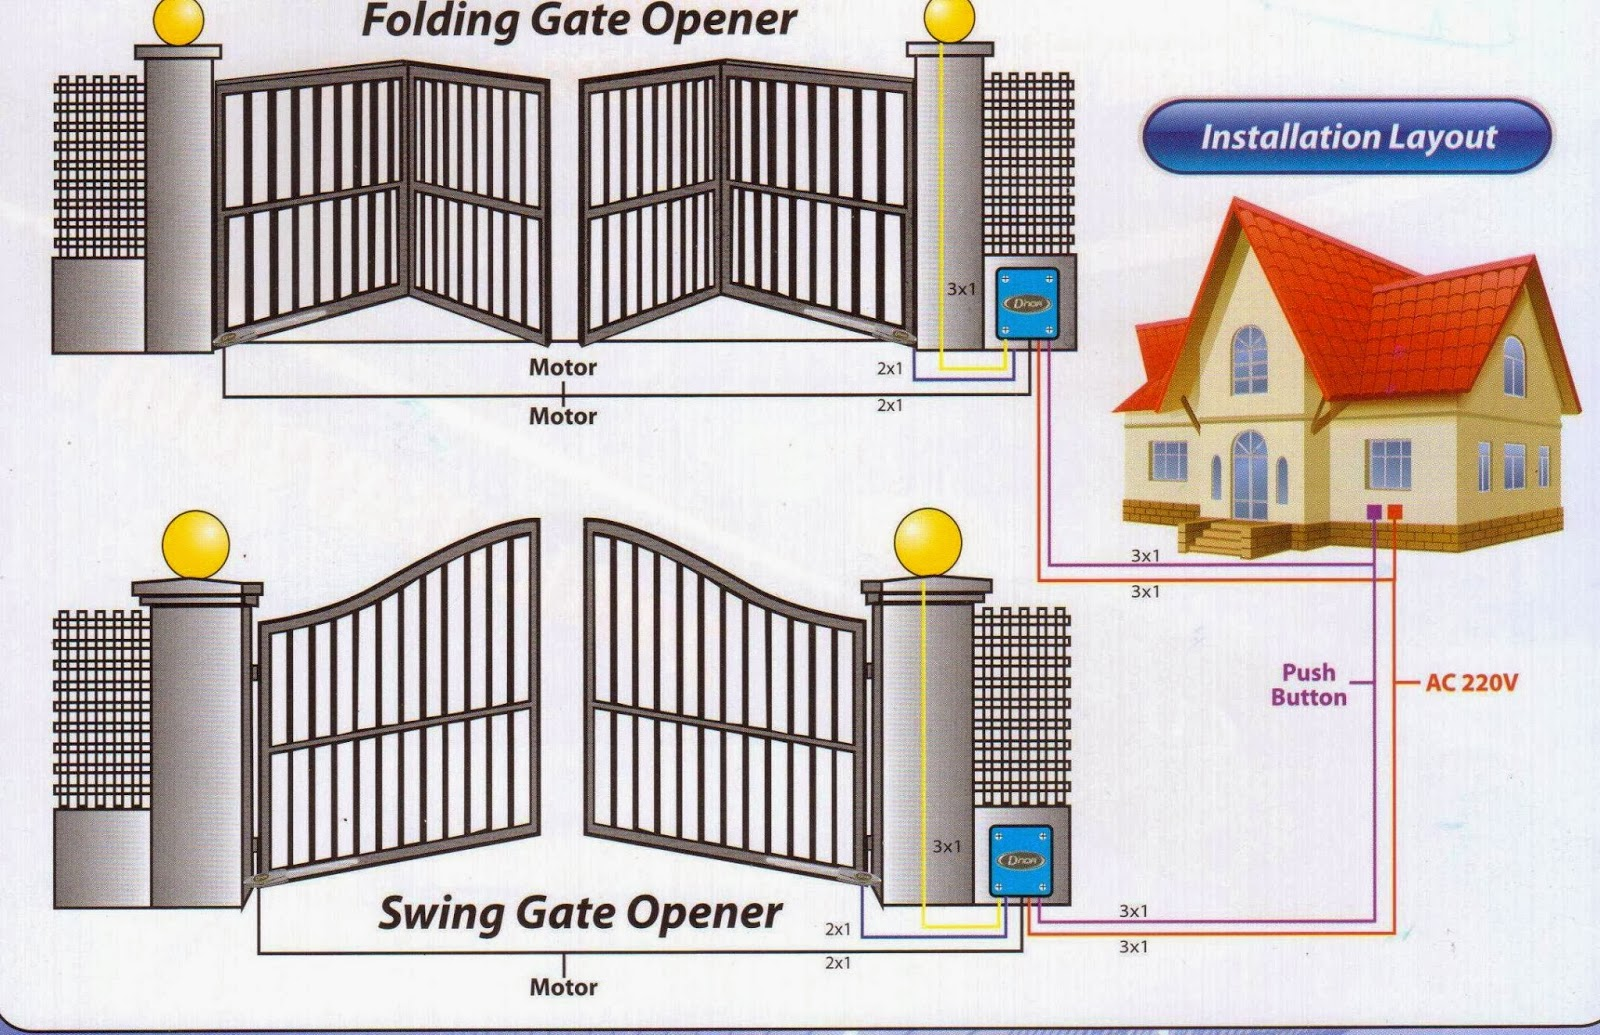 auto gate wiring diagram pdf 2006 cobalt autogate malaysia technical support